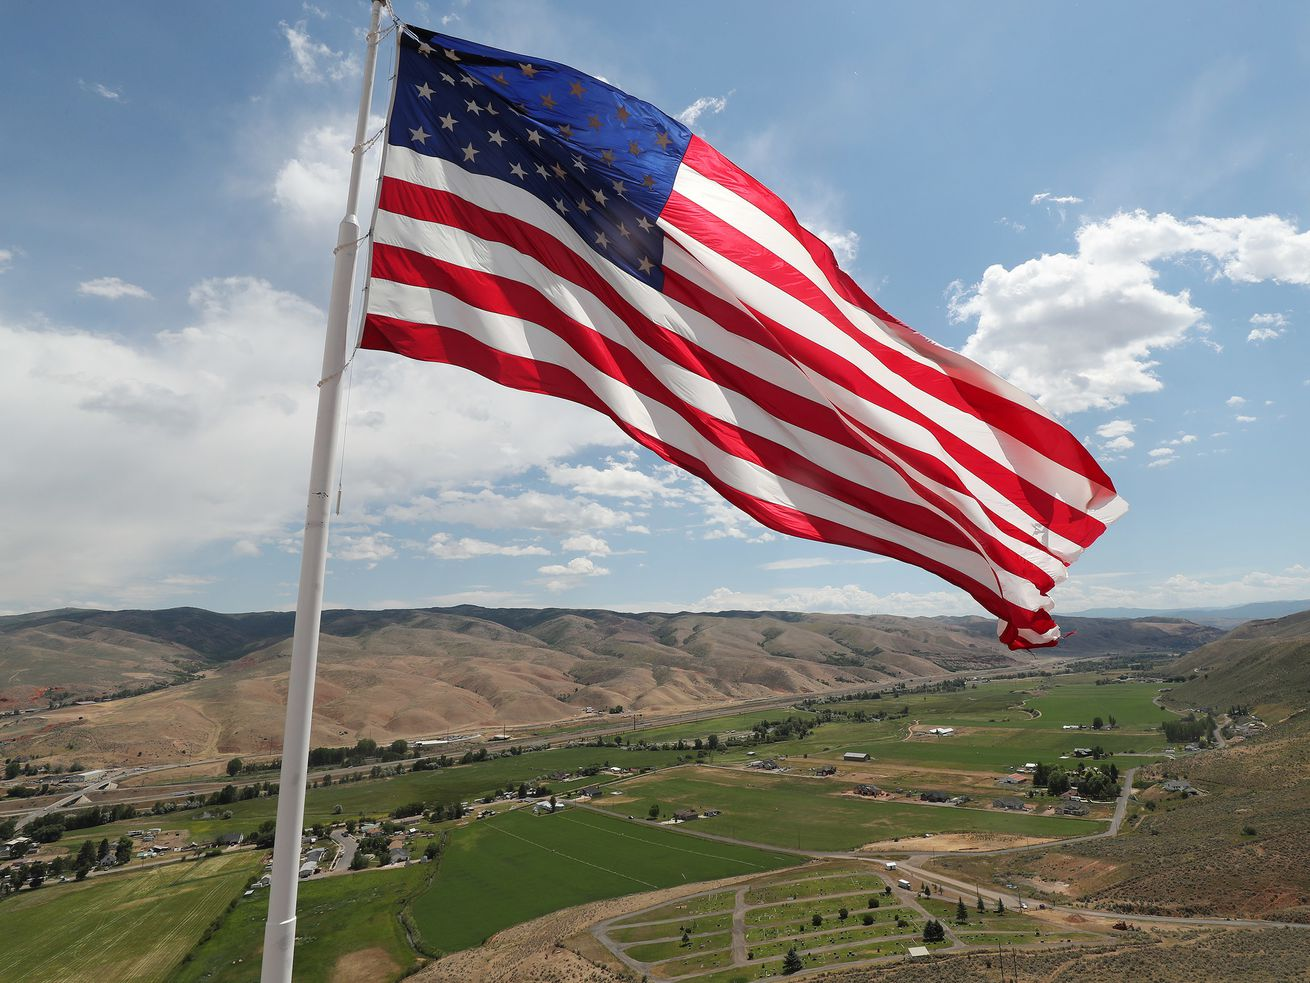 A 60-by-30-foot American flag flies over Henefer, Summit County, on July 3, 2018.